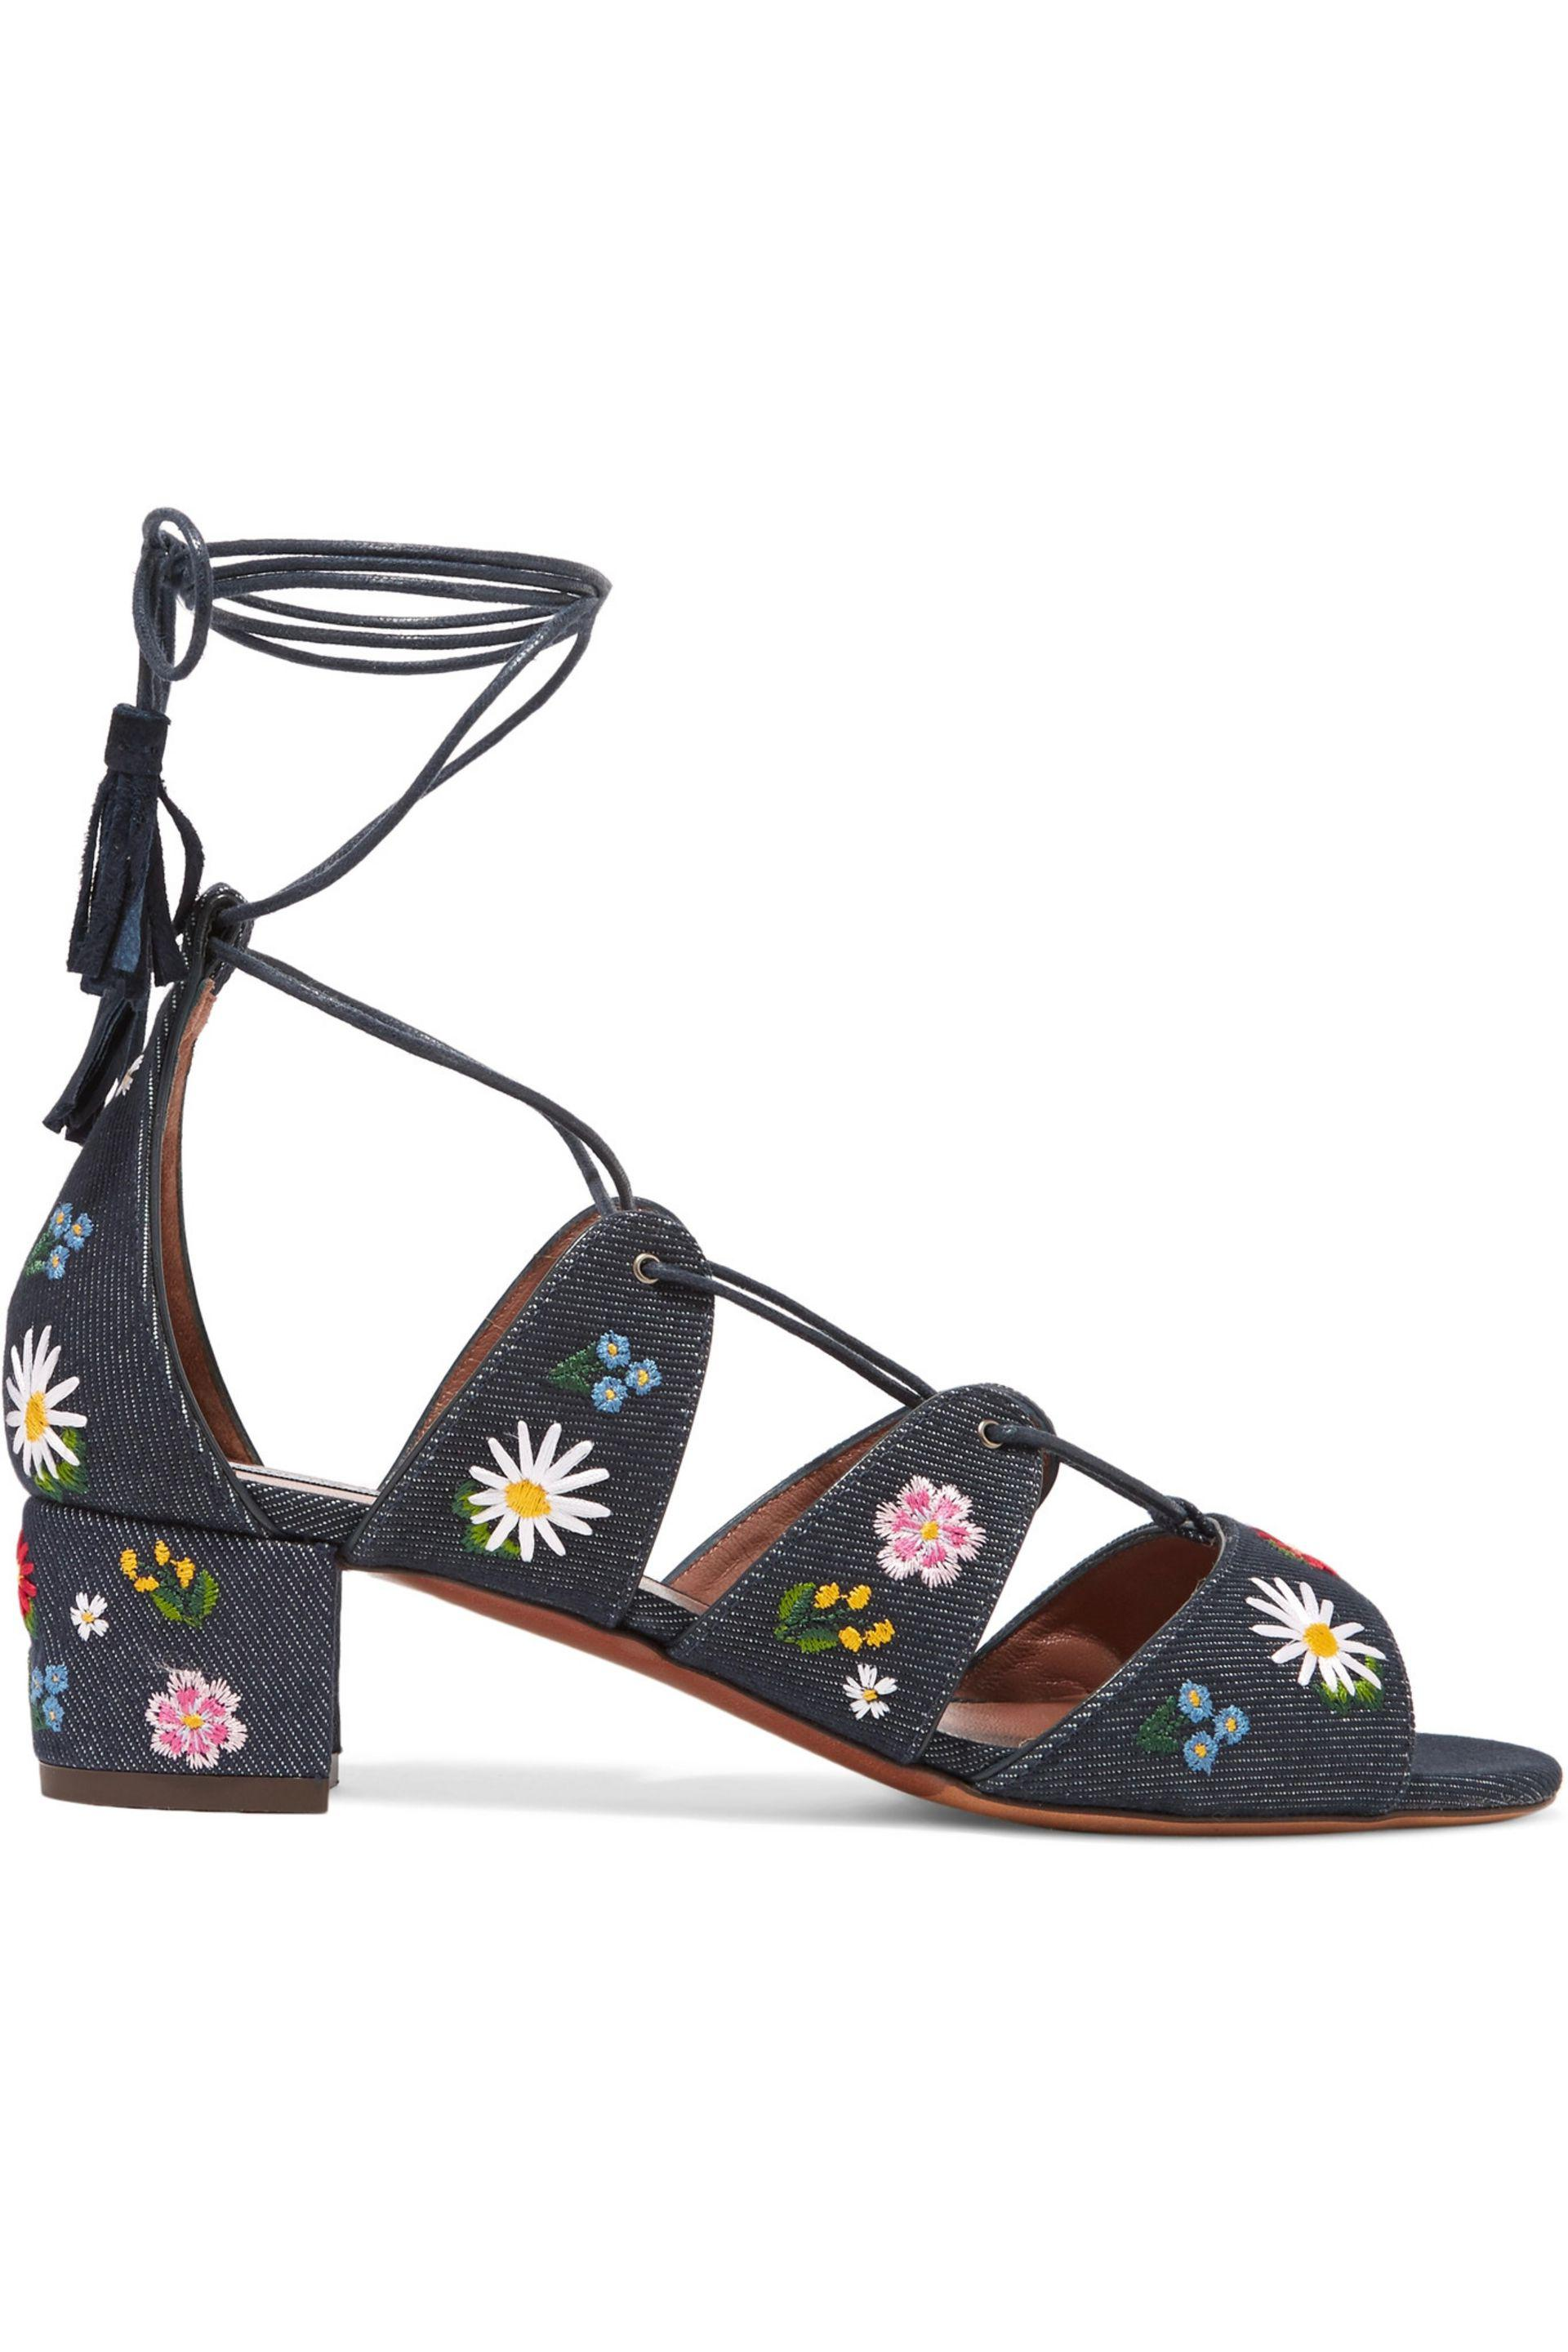 embroidered denim sandals - Blue Tabitha Simmons osir45DLE9